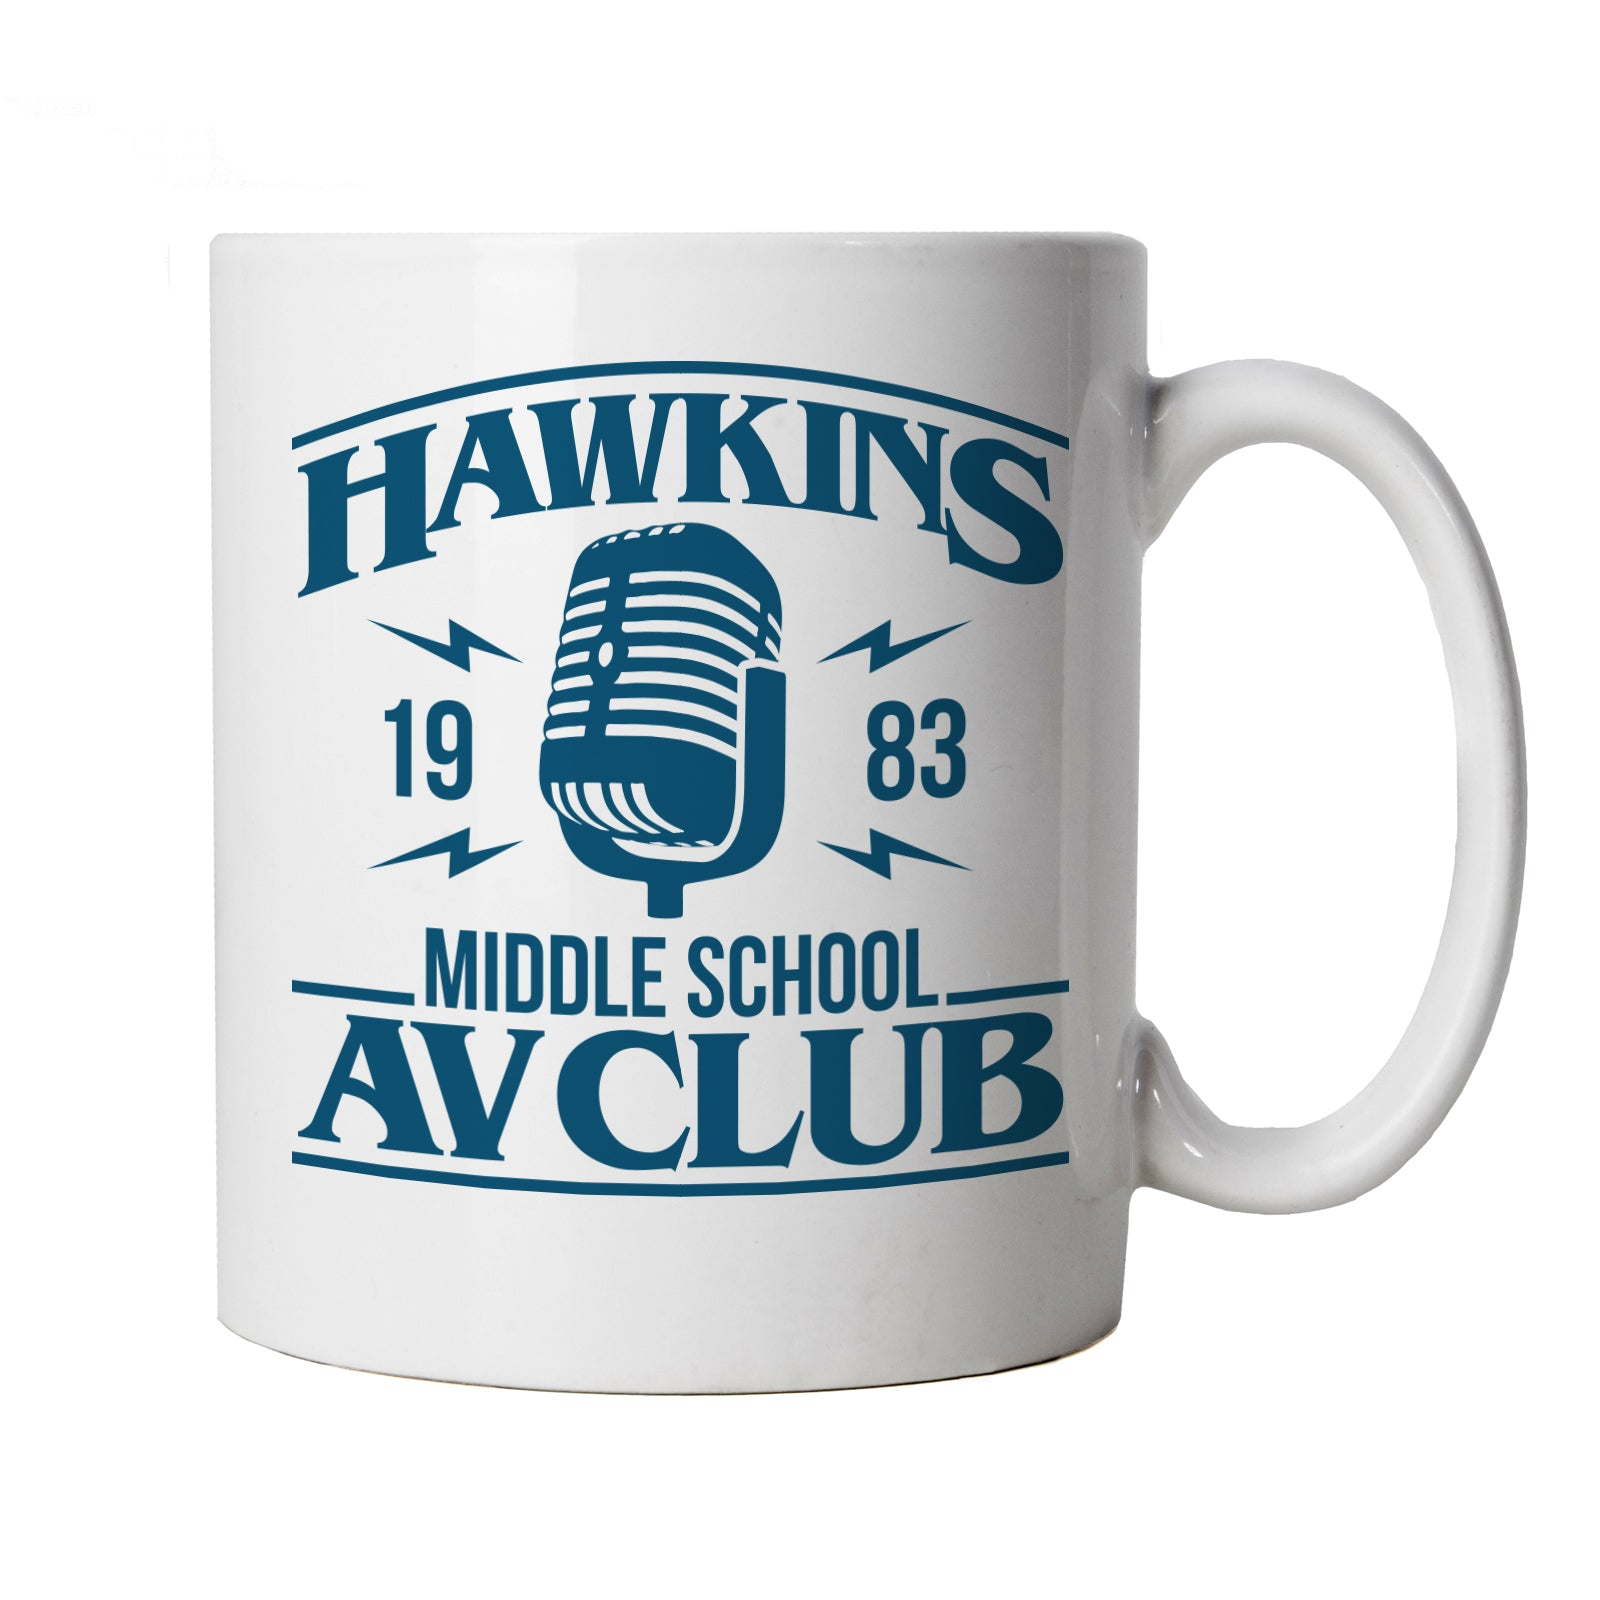 Hawkins Middle School AV Club Mug | Action Adventure Horror Sci-Fi Series Binge Halloween | Upside Down DND 80s Small Town Summer | TV & Movie Cup Gift